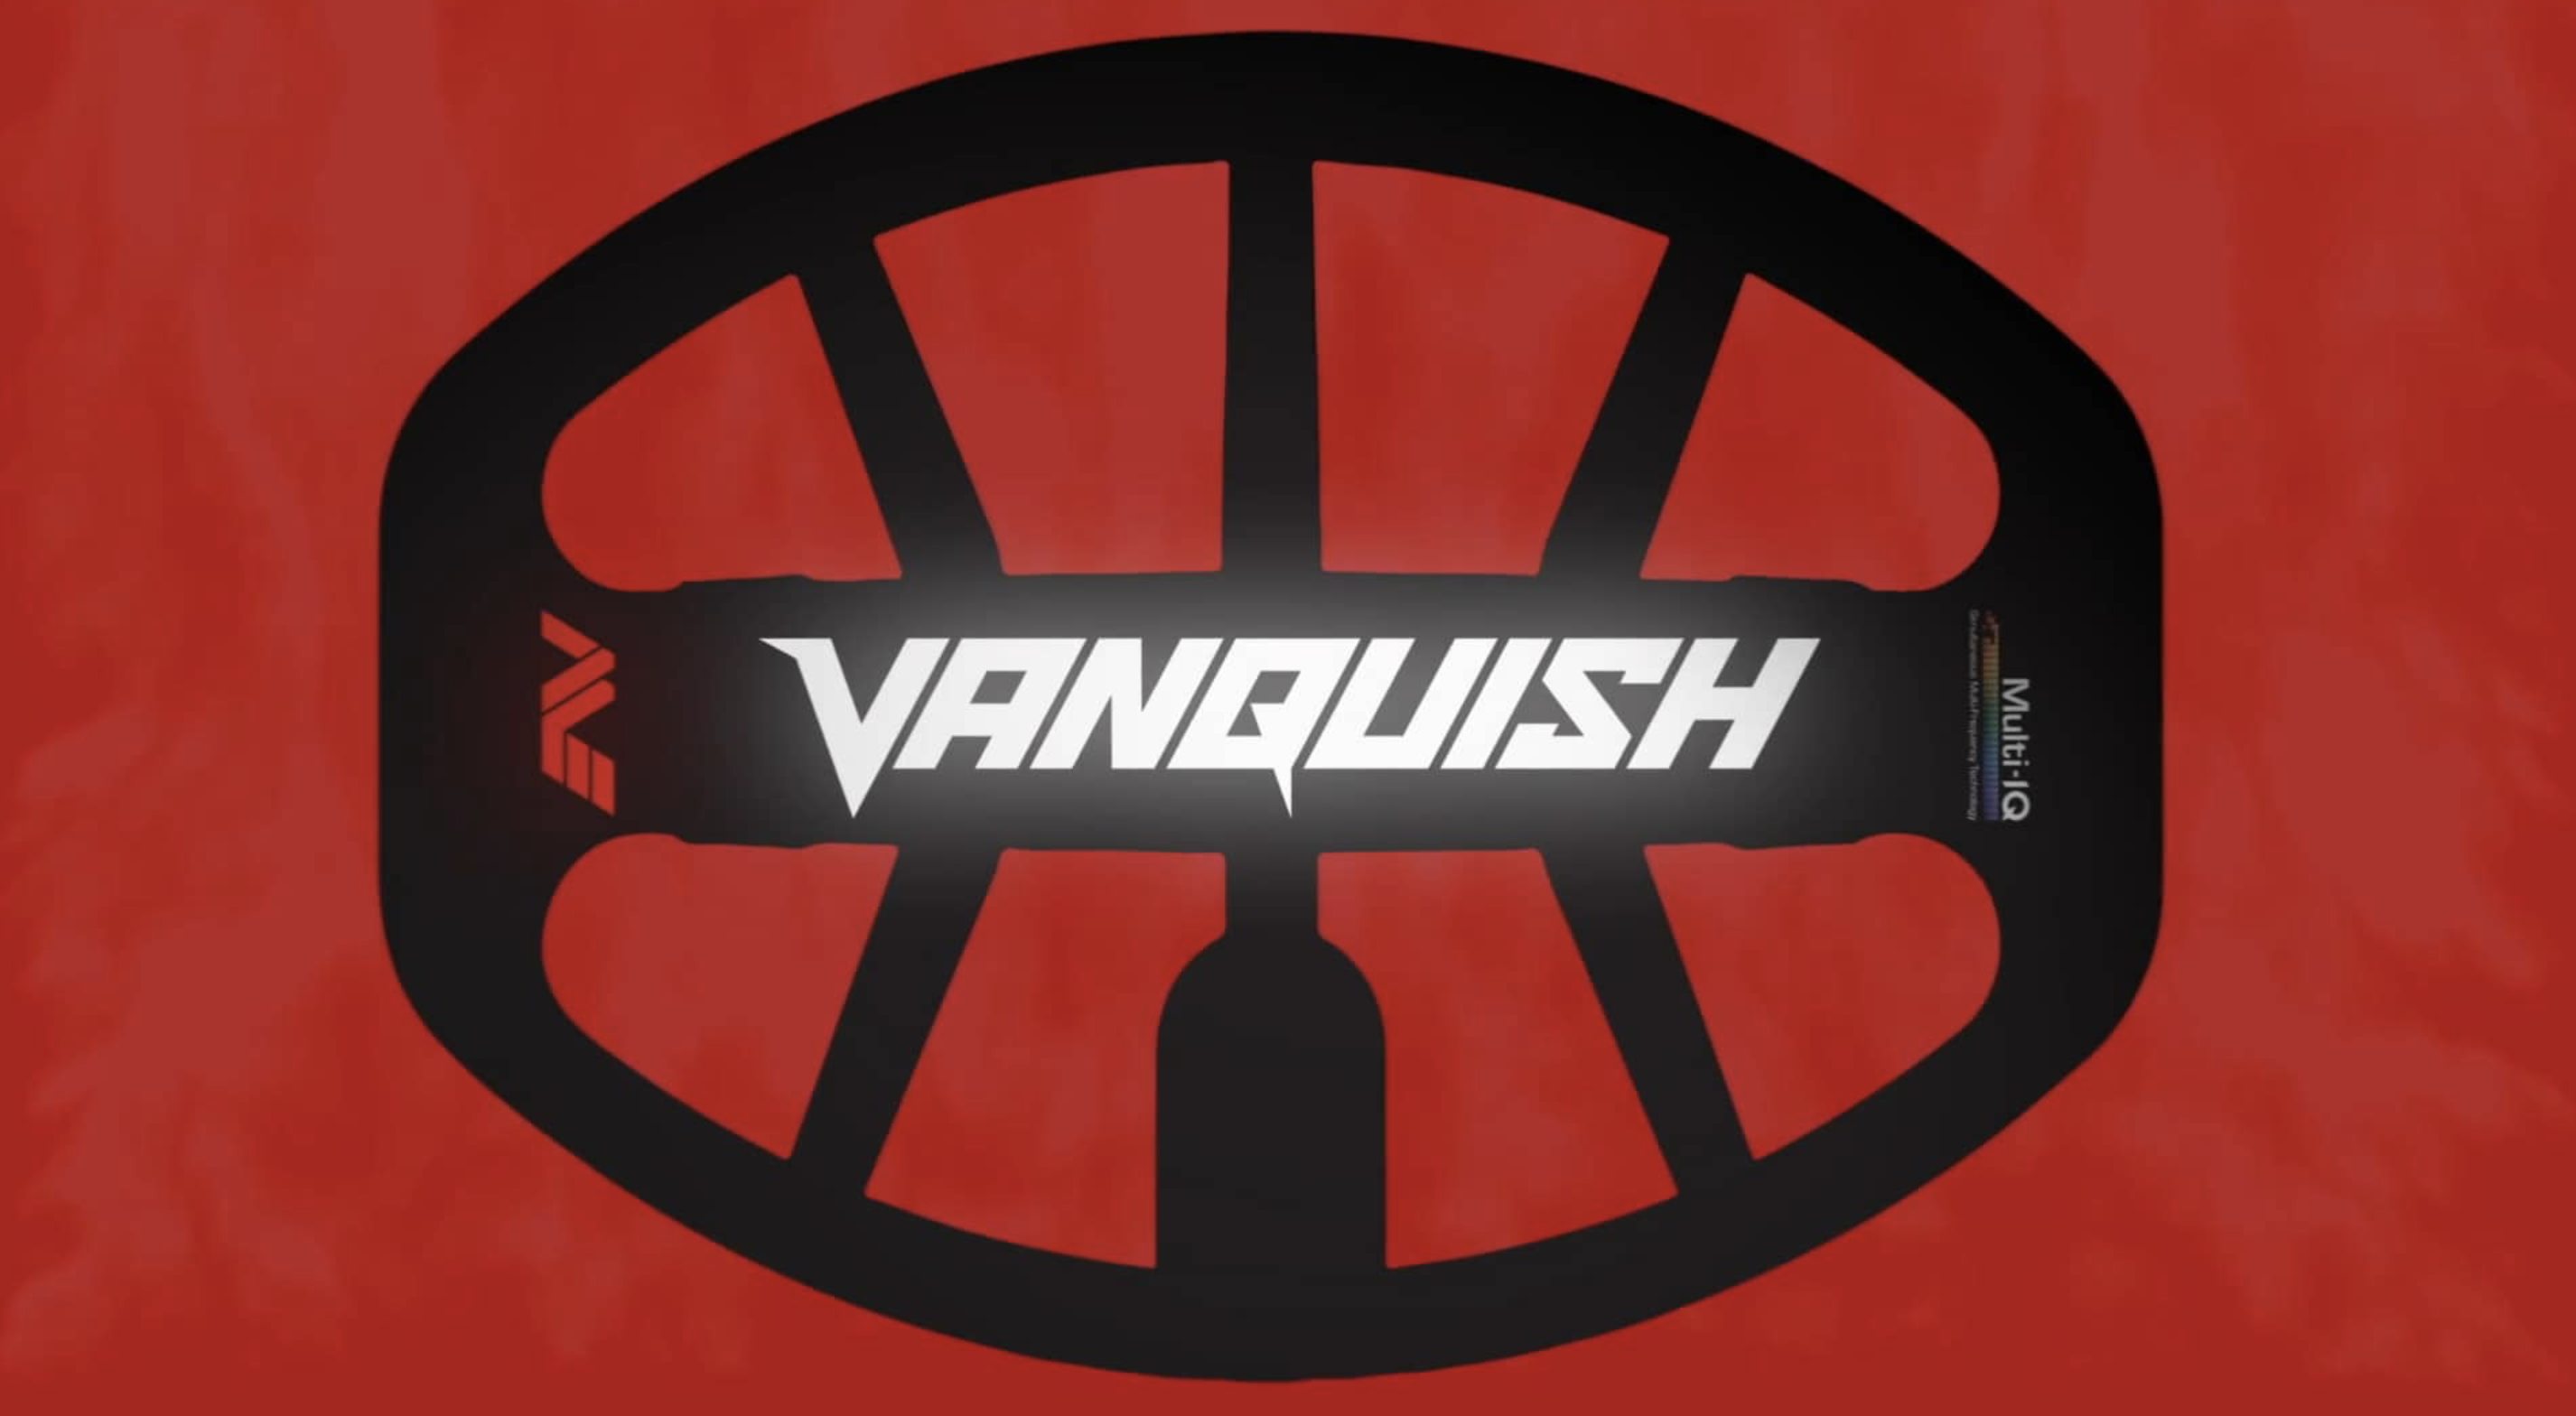 Minelab Vanquish Product Launch Evenlode